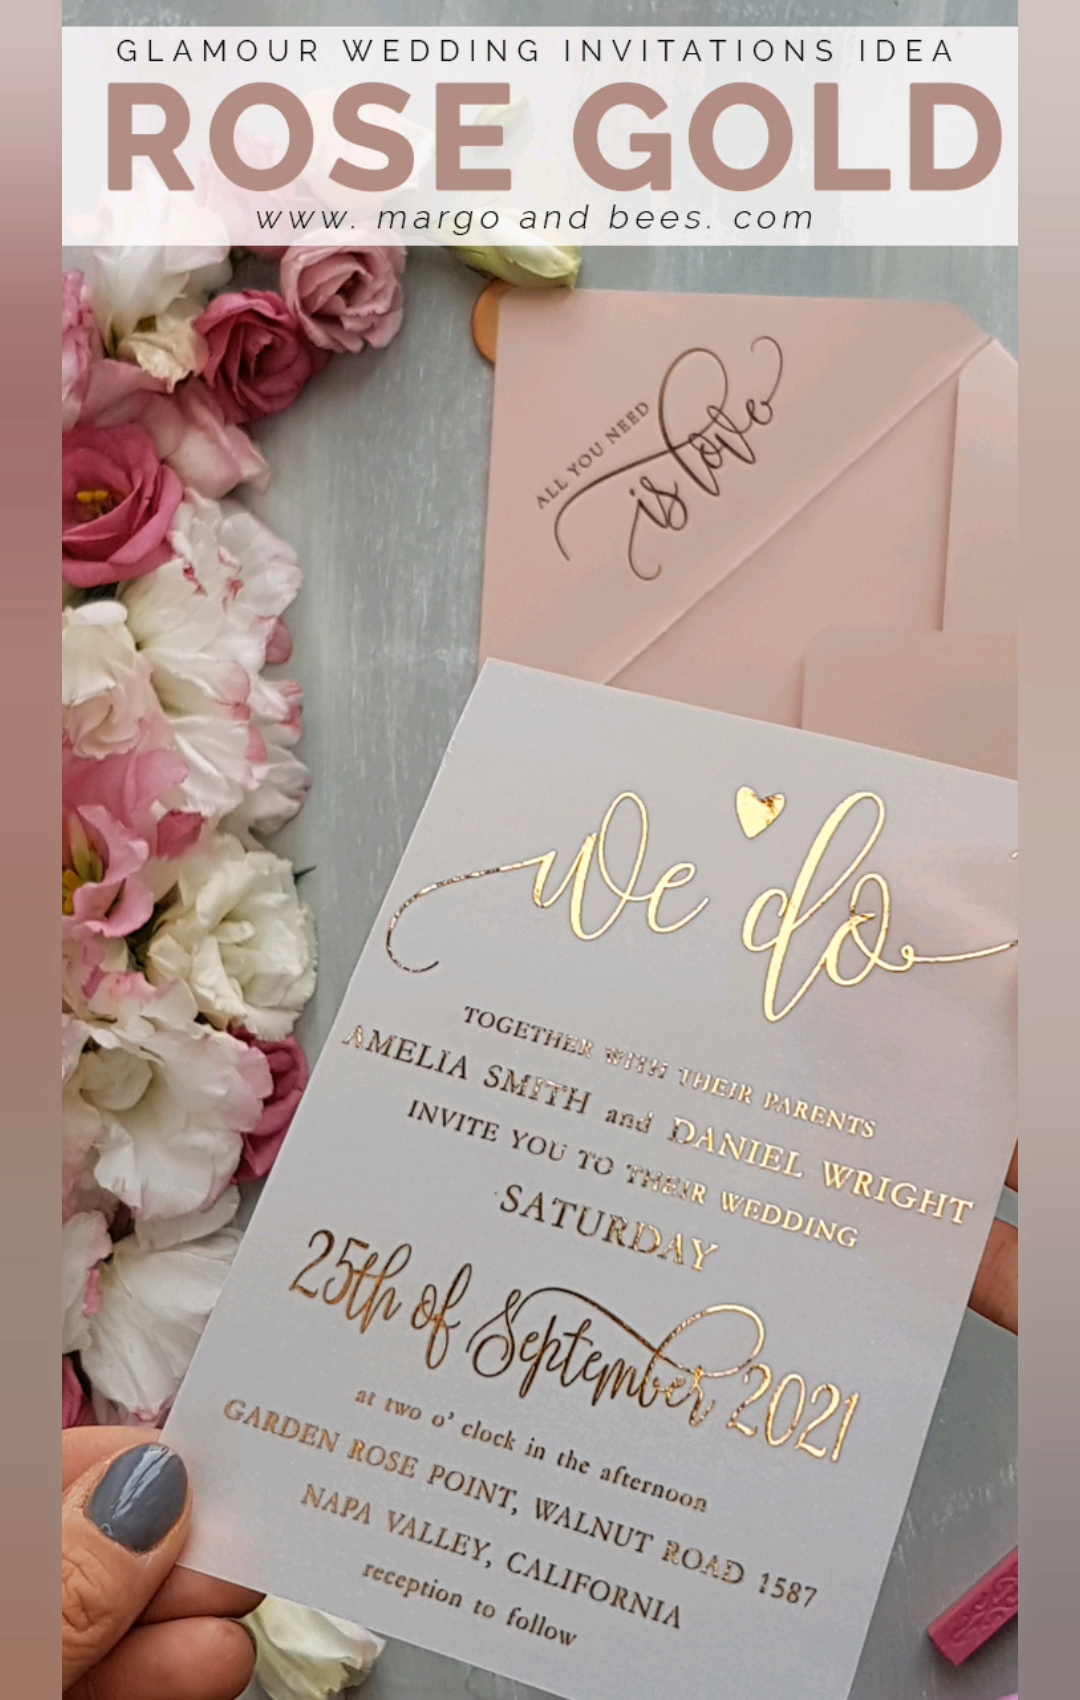 Simple wedding invitations with rose gold lettering